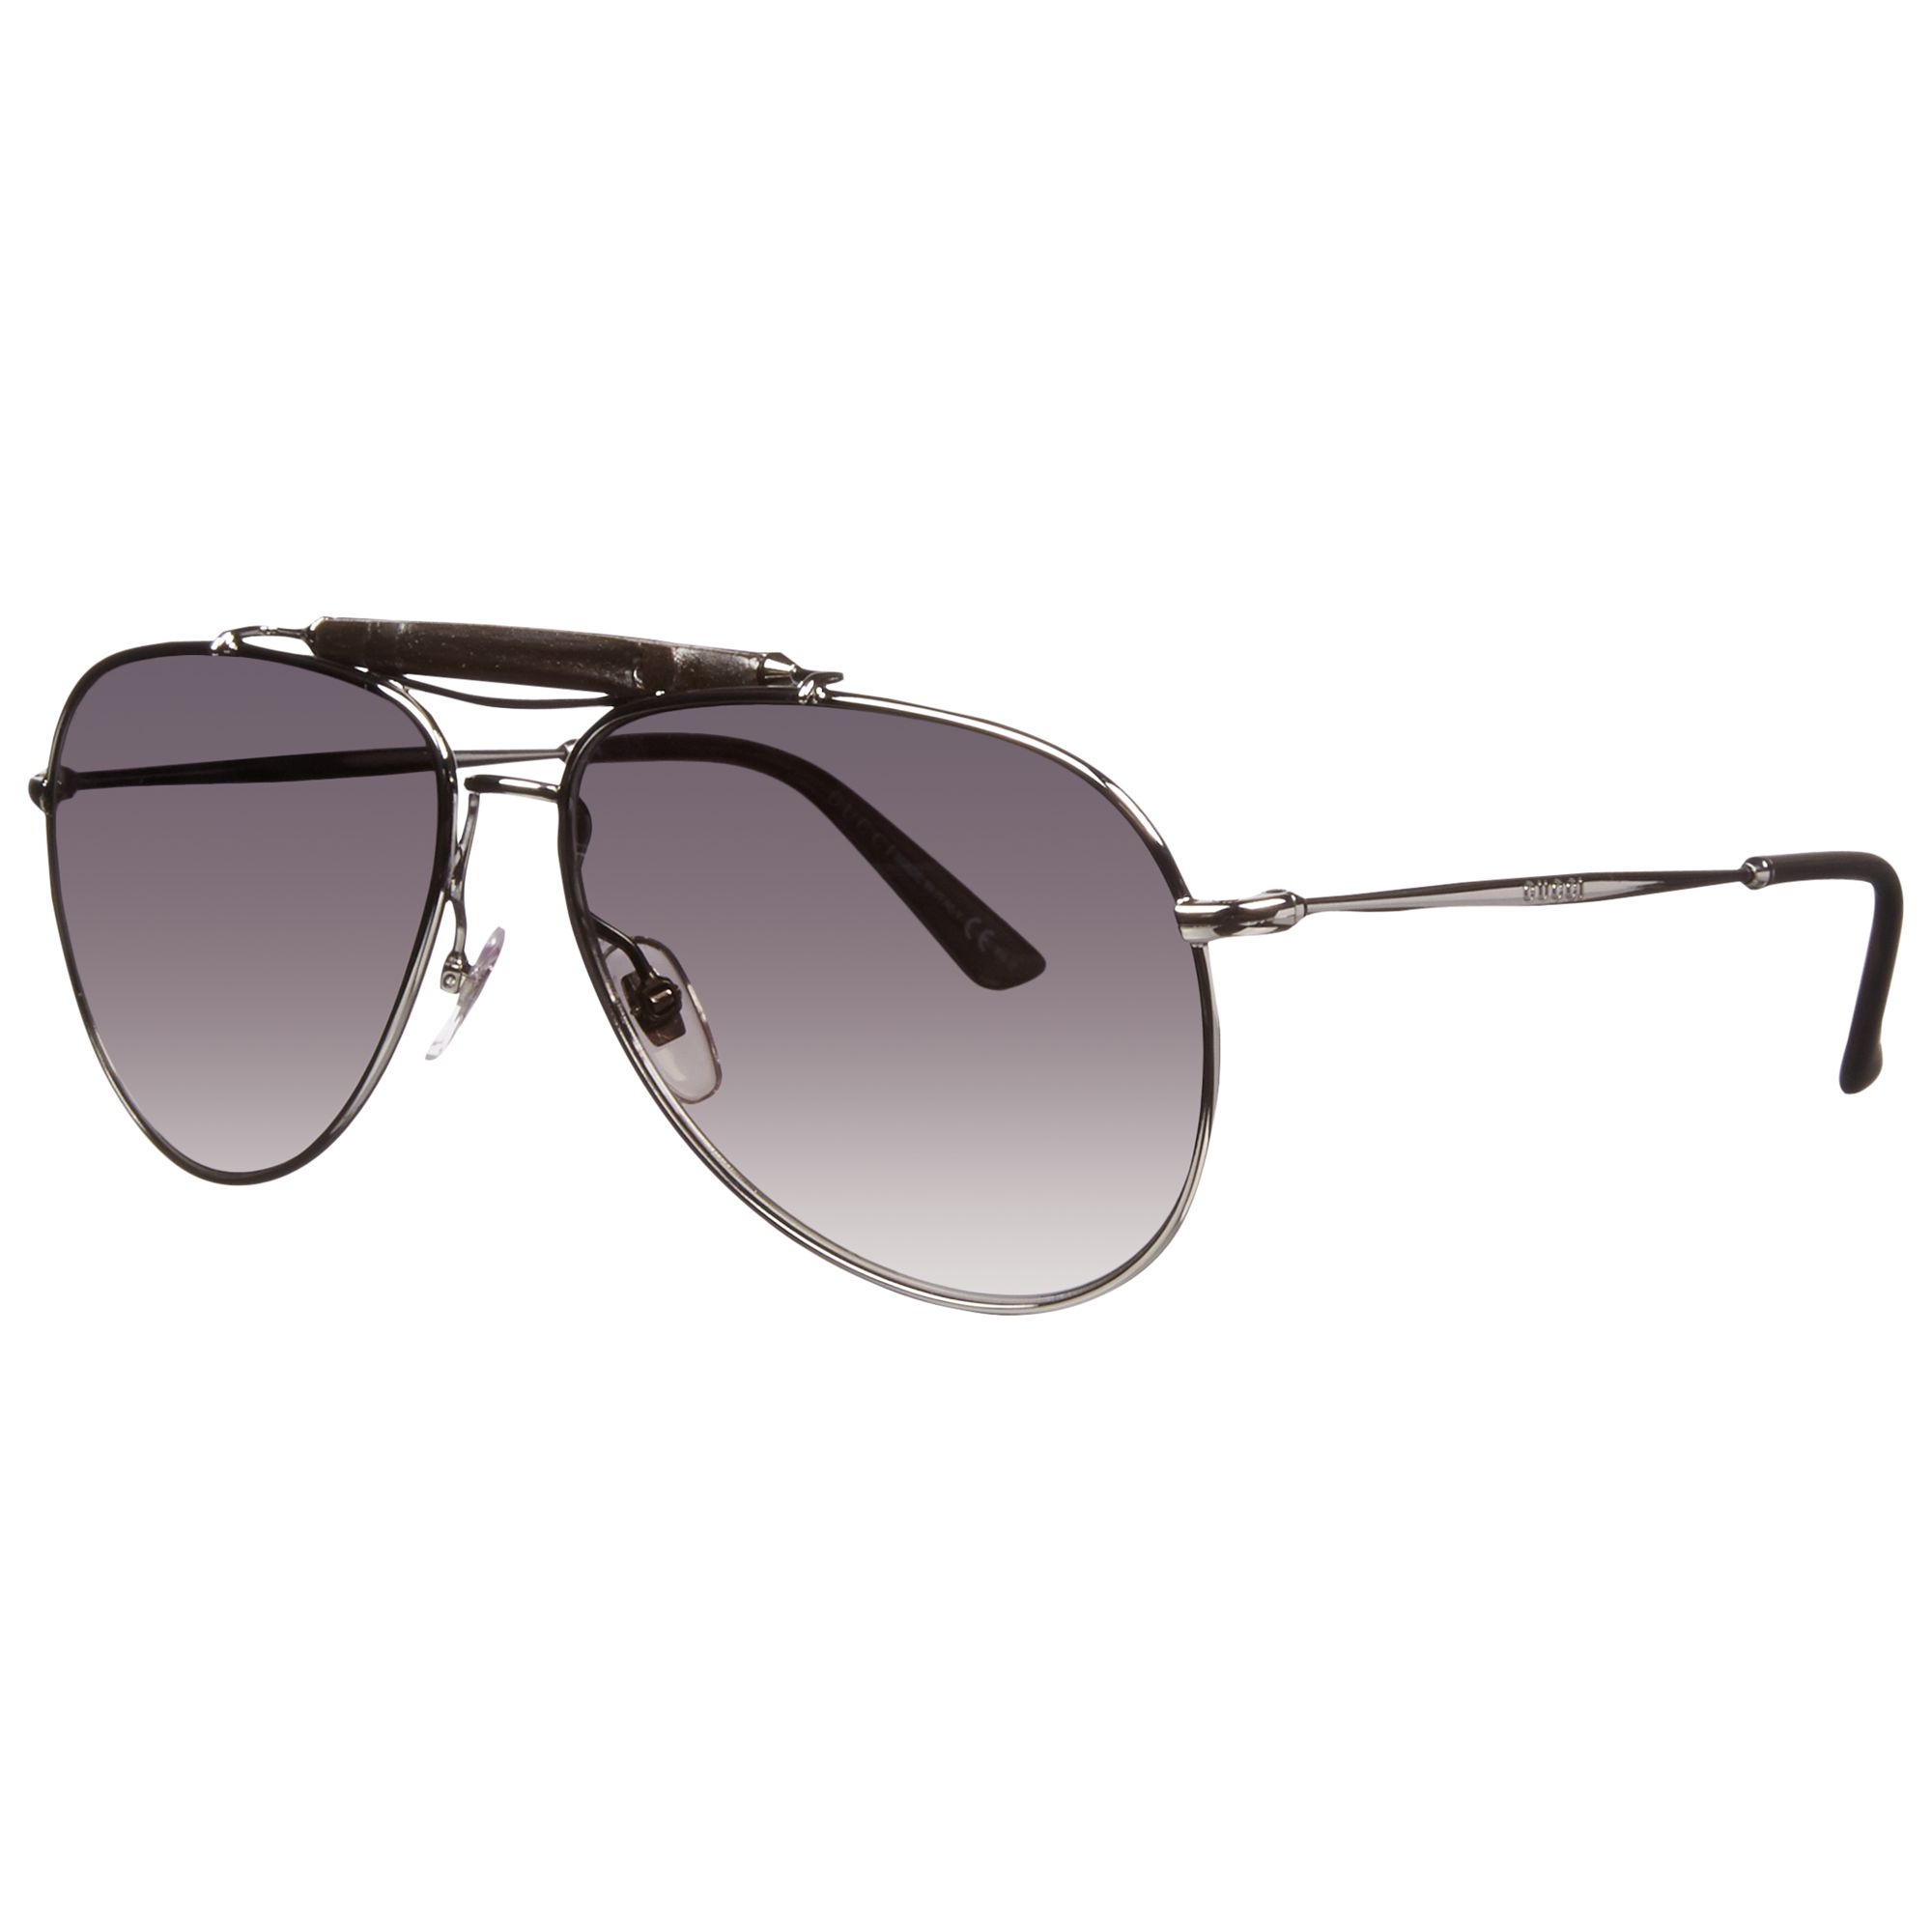 Gucci Bamboo Frame Glasses : Buy Gucci GG2235/S J5GOH Bamboo & Metal Frame Aviator ...